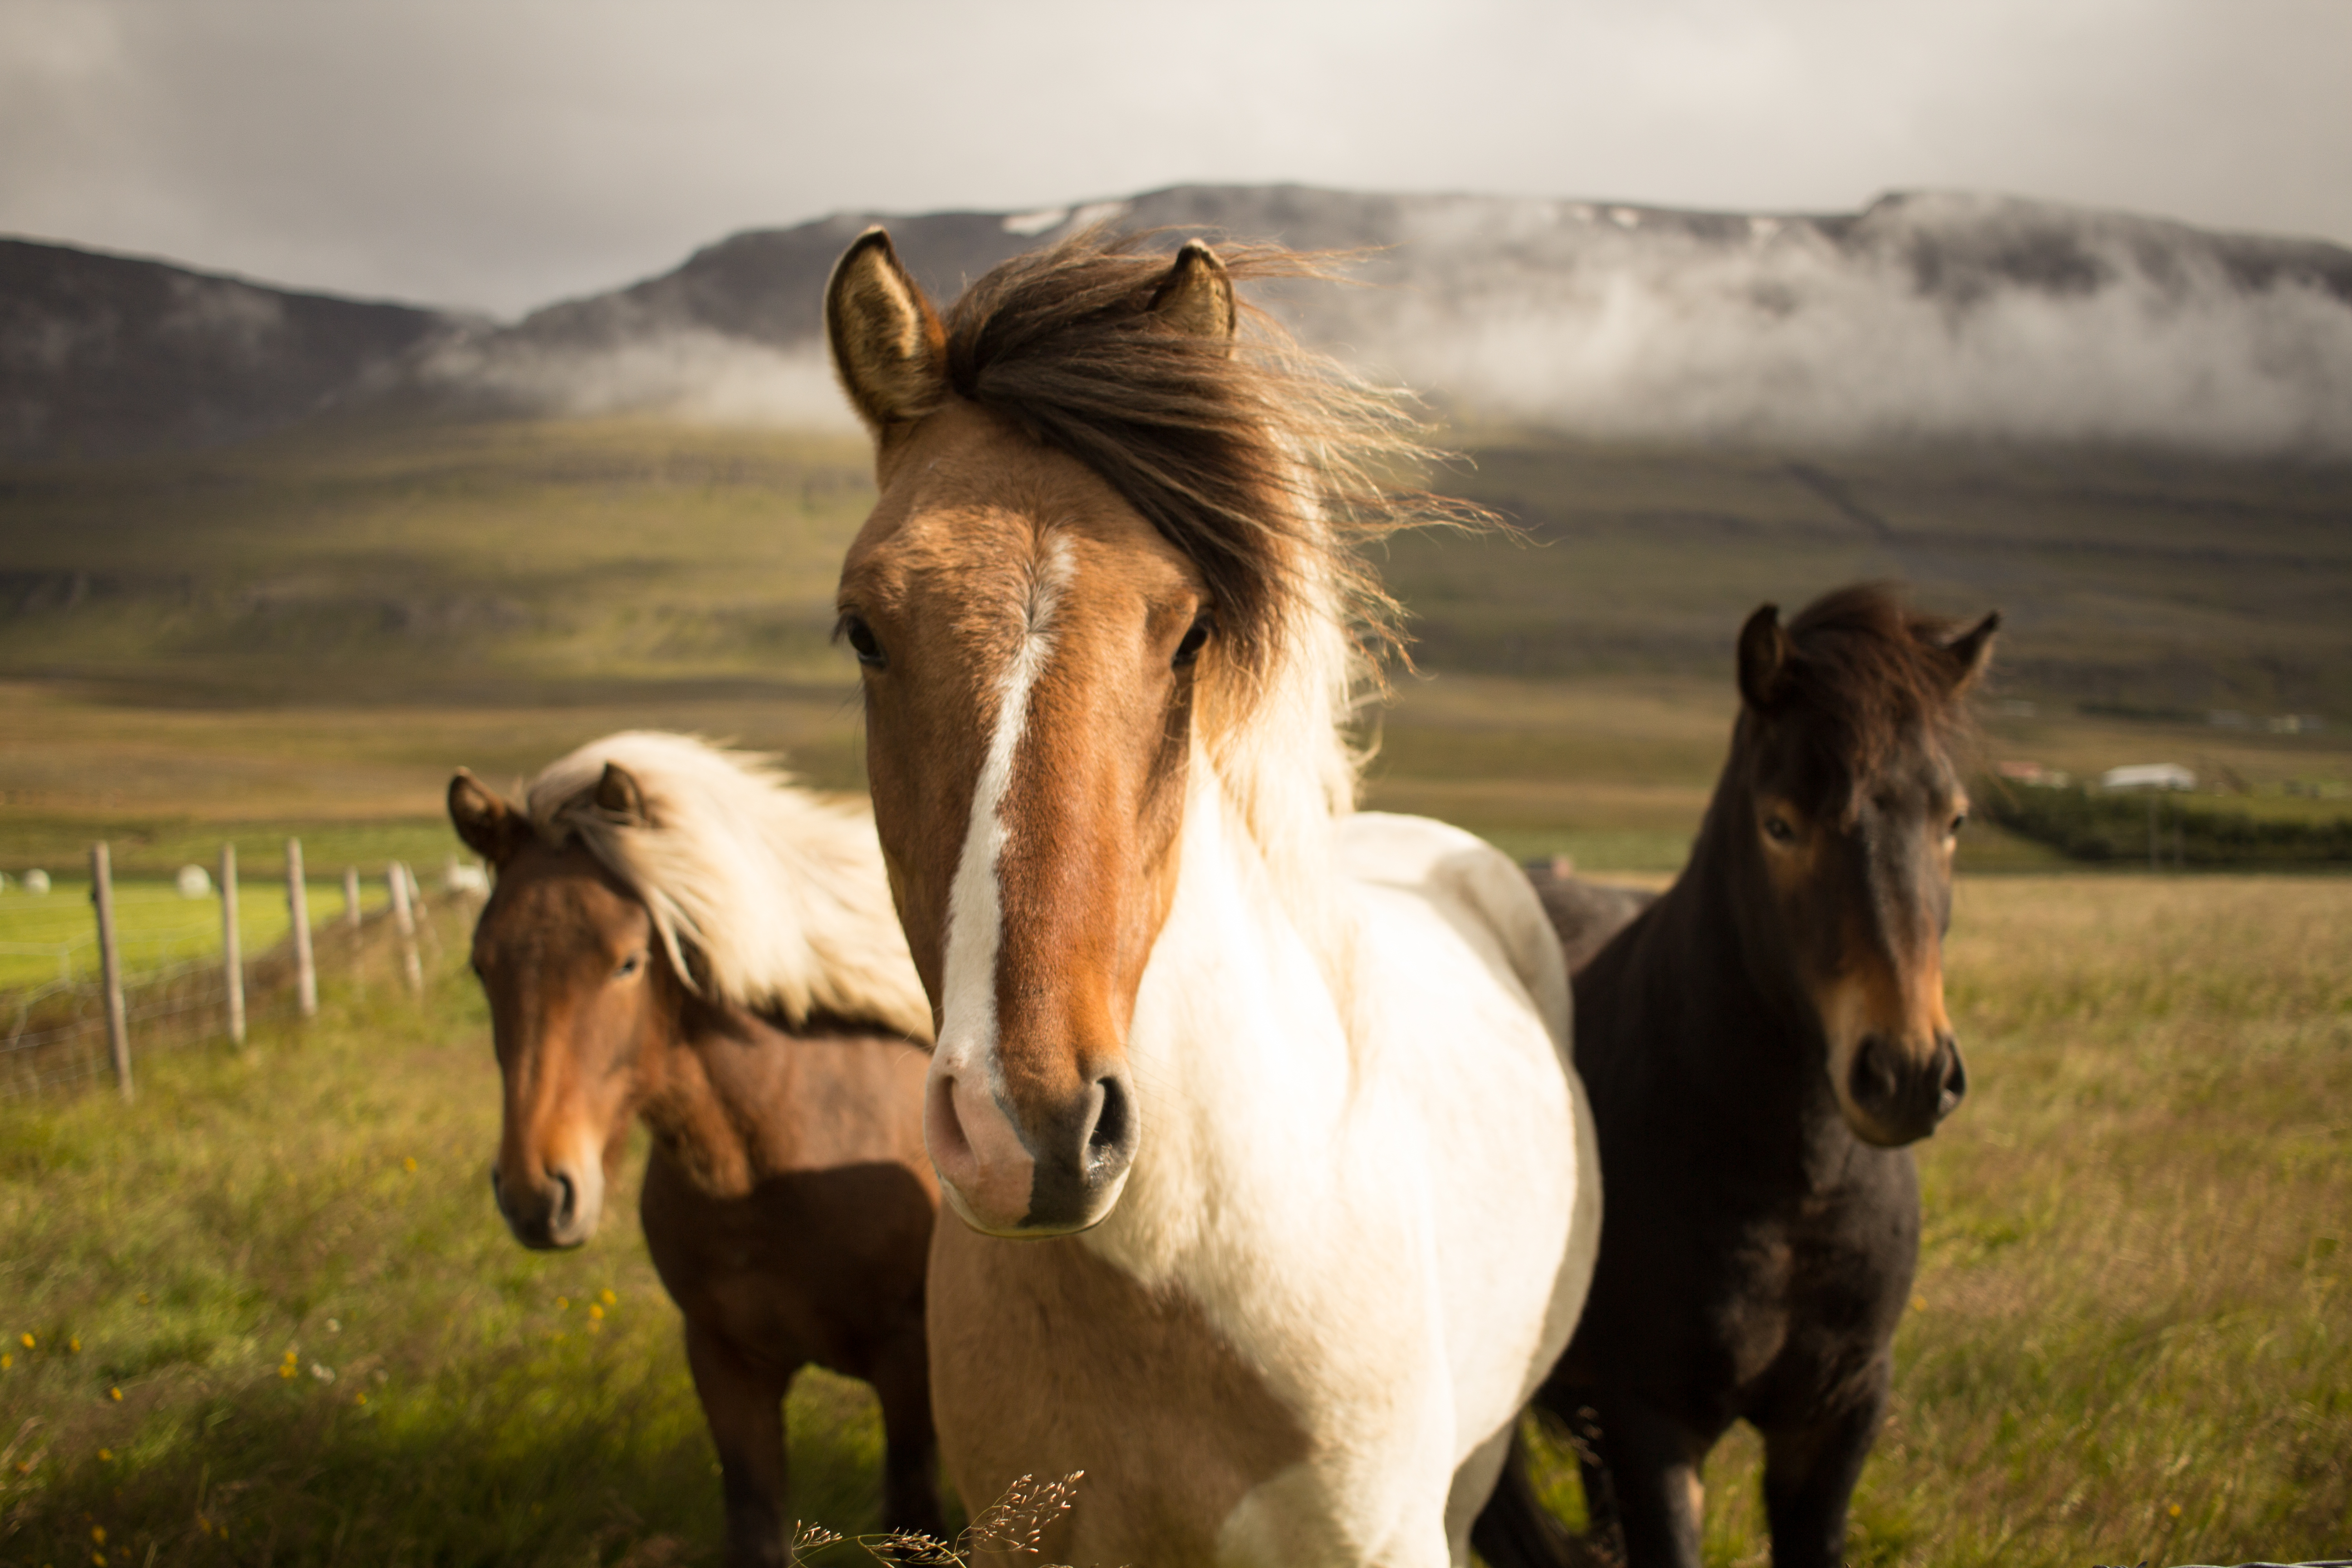 Best 20 Horse Pictures Download Free Images on Unsplash